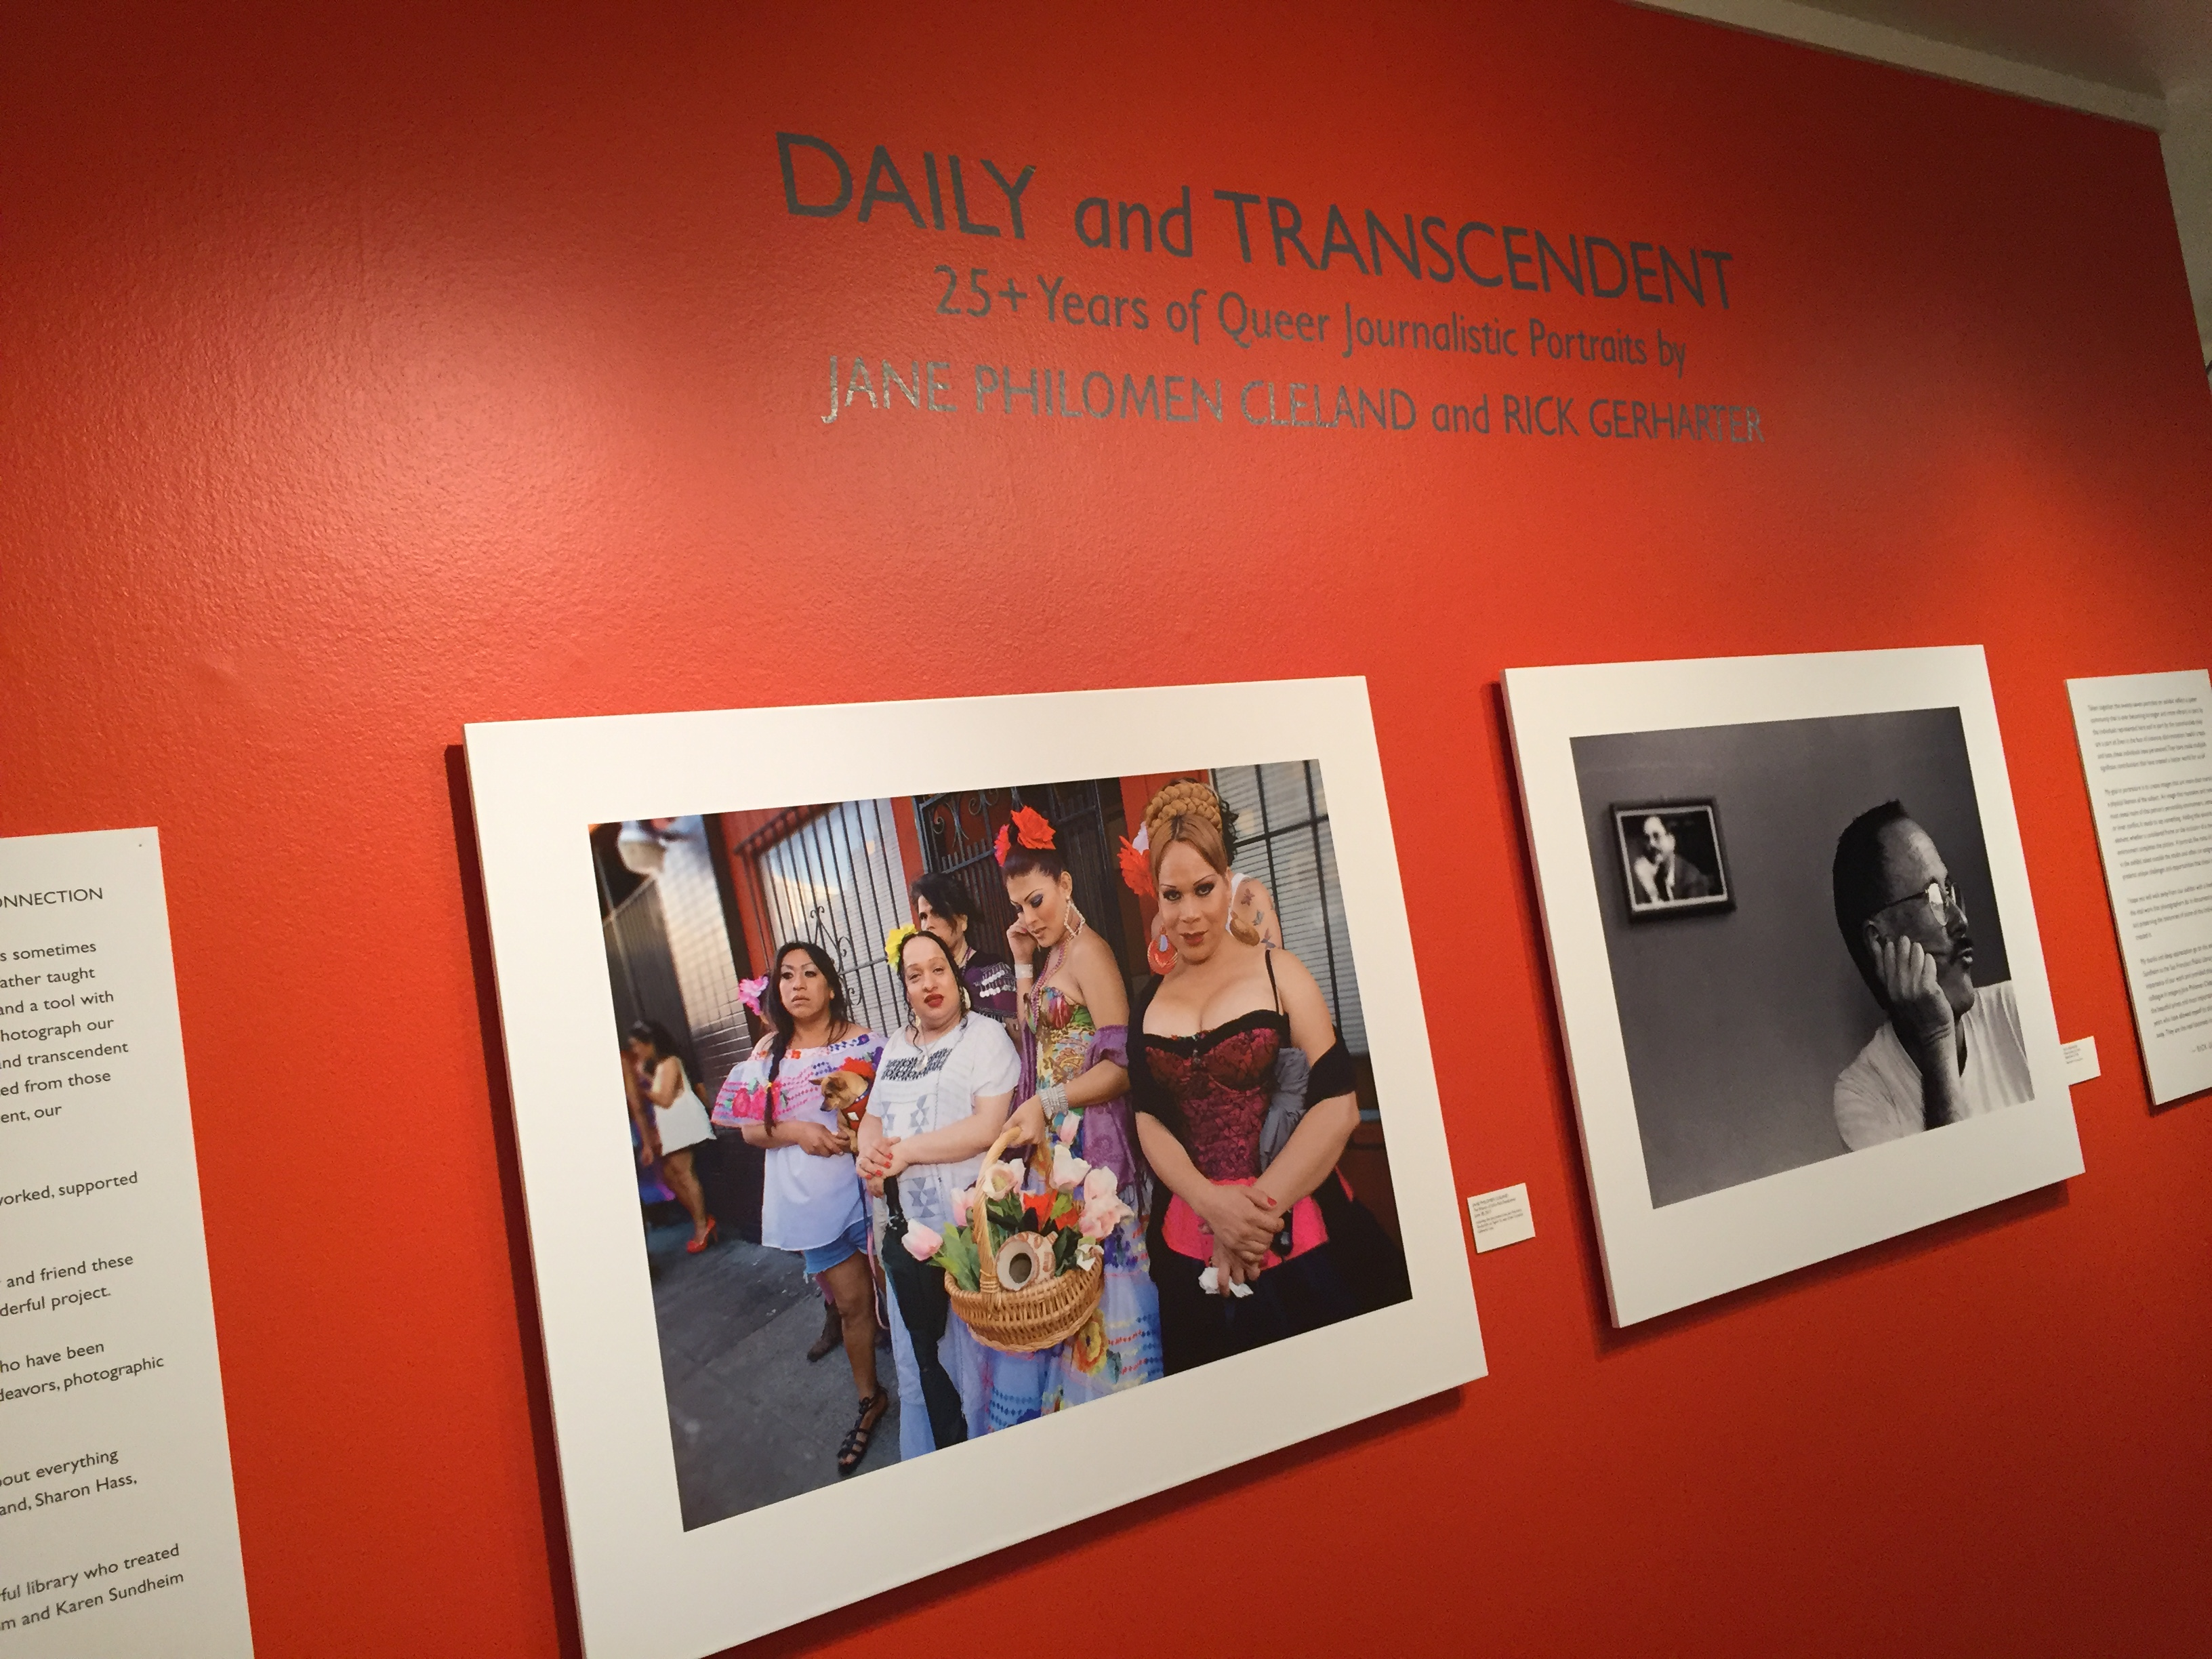 Daily and Transcendent: 25+ years of Photojournalistic Portraits Exhibit, November 1 – January 3, San Francisco Public Library, Main Branch, Jewett Gallery, 100 Larkin Street, San Francisco, Calif. (Photo: Girls That Roam)